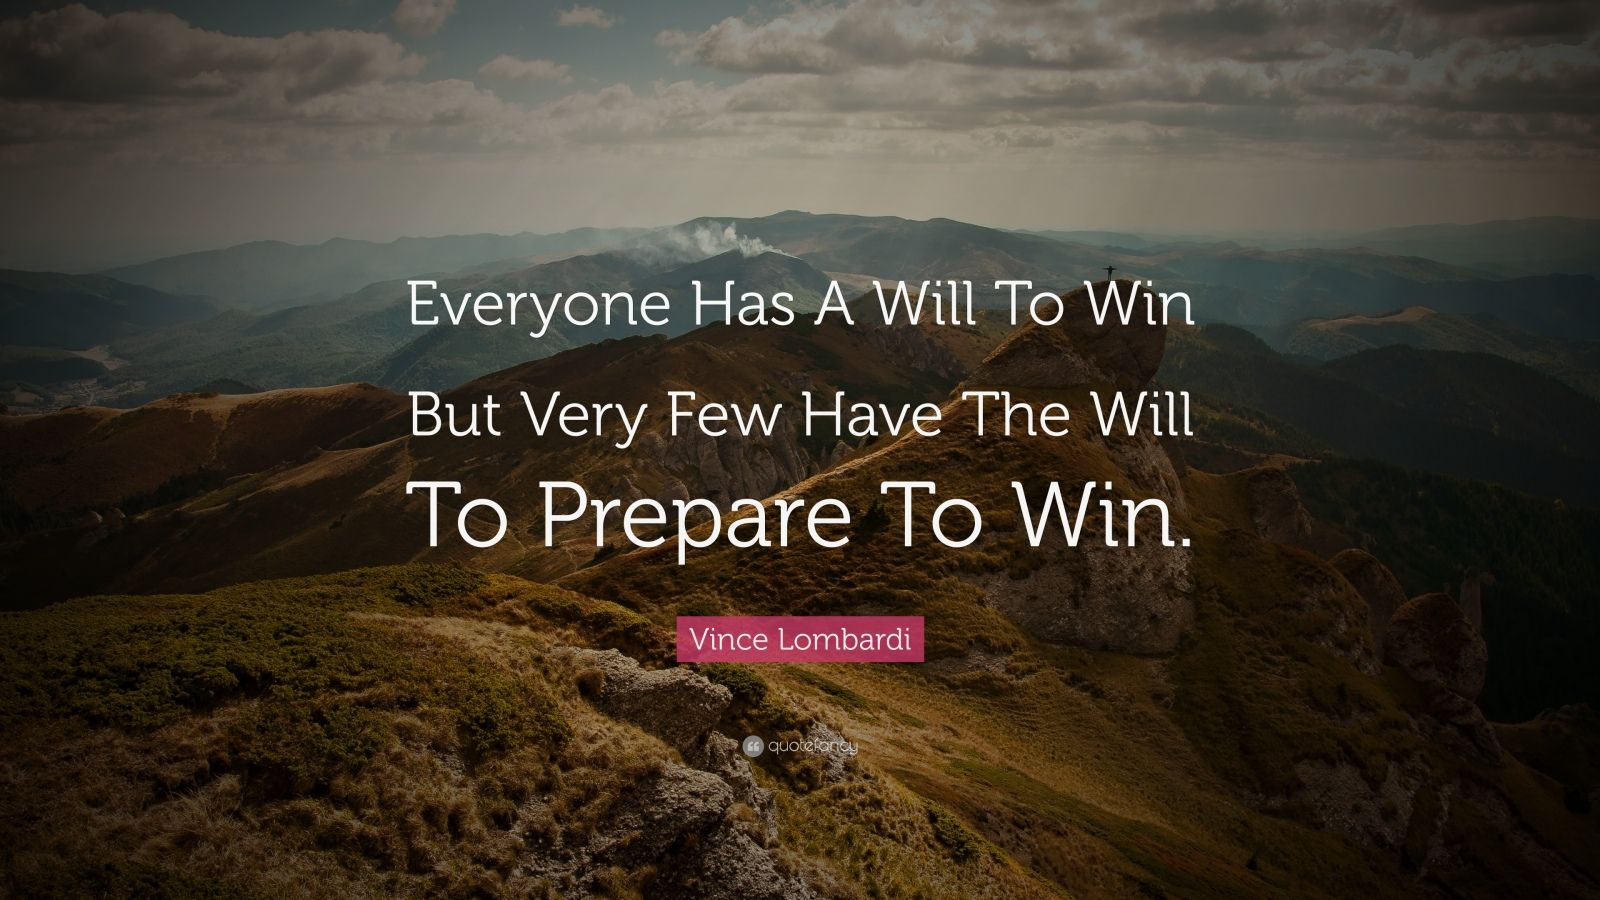 "Winning Quotes: ""Everyone Has A Will To Win But Very Few Have The Will To Prepare To Win."" — Vince Lombardi"